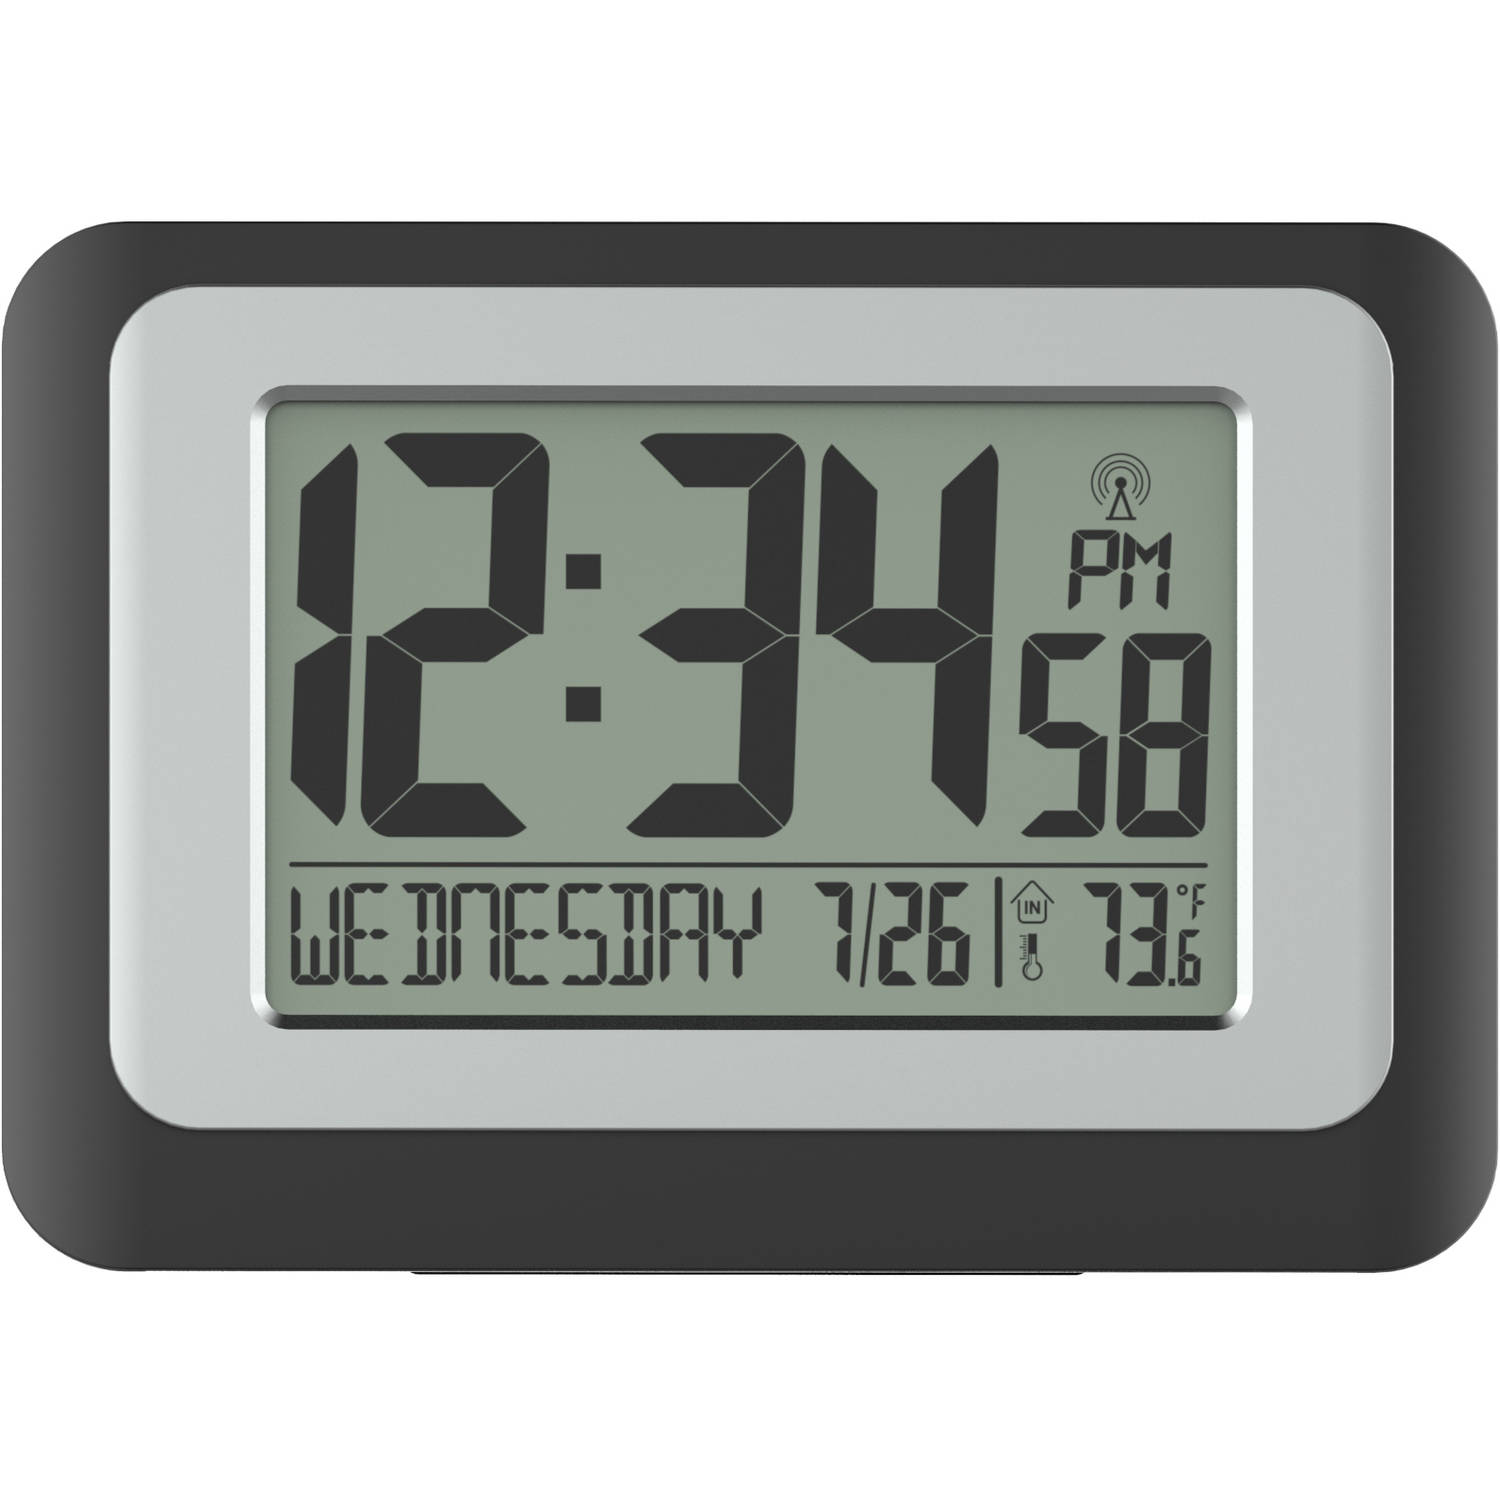 better homes and gardens digital clock with indoor temperature walmartcom - Better Homes And Gardens Digital